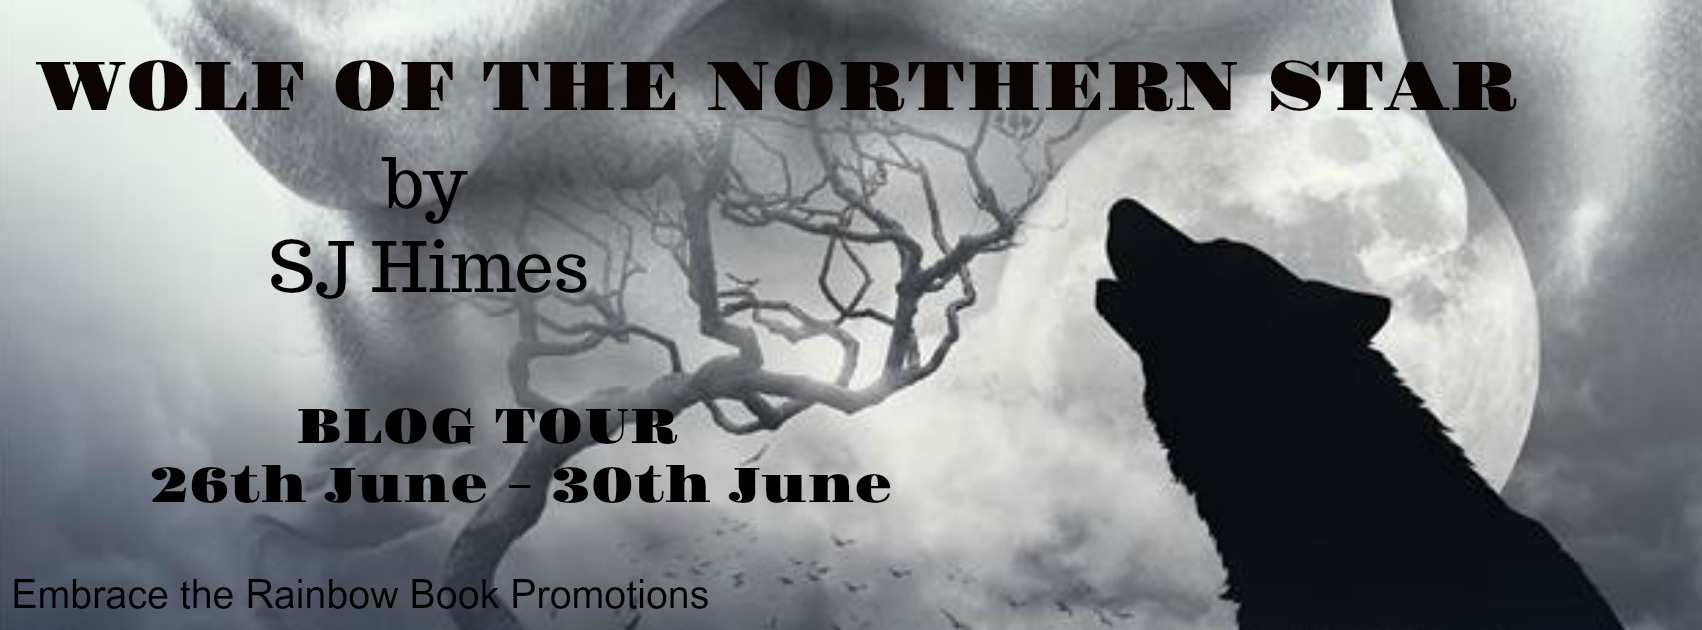 Get Wolf of the Northern Star by SJ Himes on Amazon & Kindle Unlimited